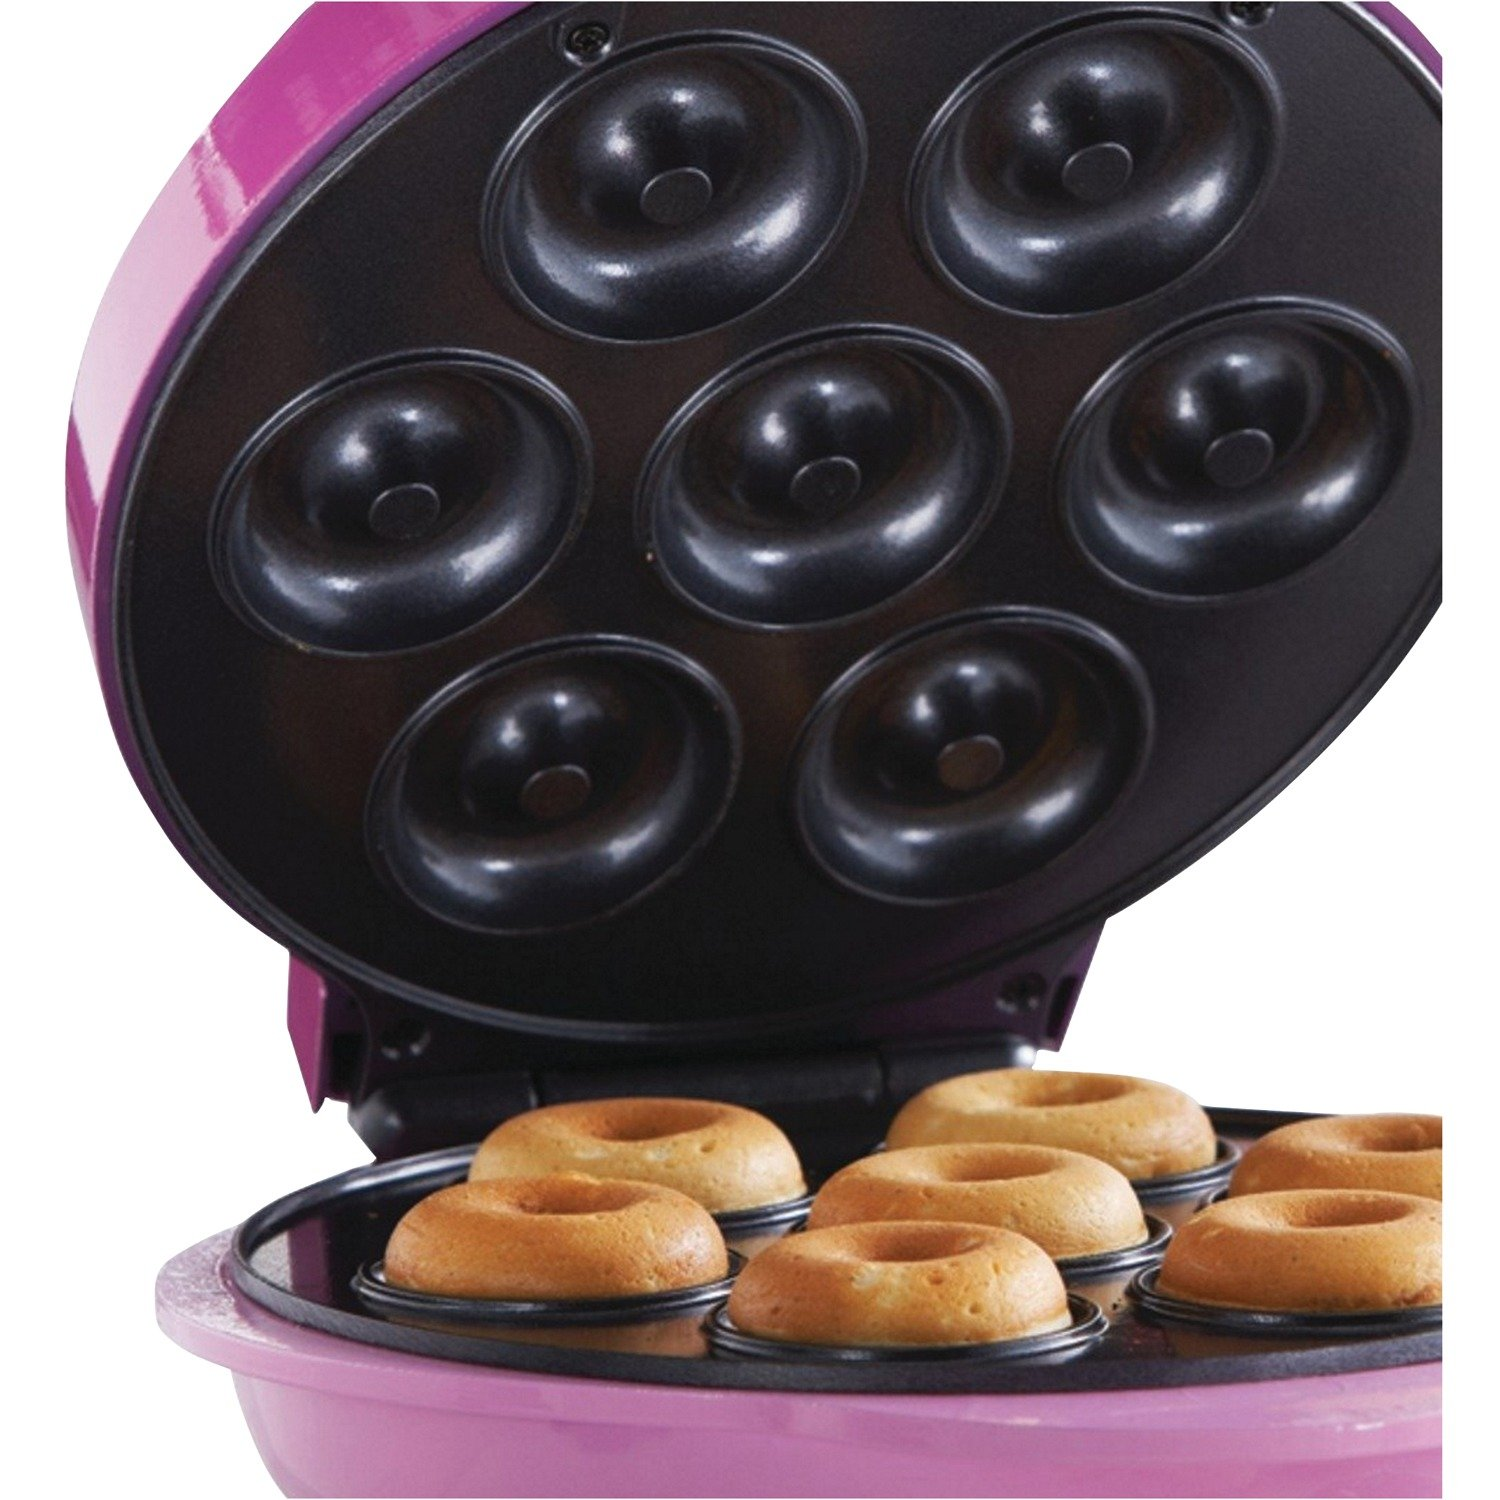 Brentwood TS-250 Non-Stick Mini Donut Maker Machine, Pink by Brentwood (Image #8)